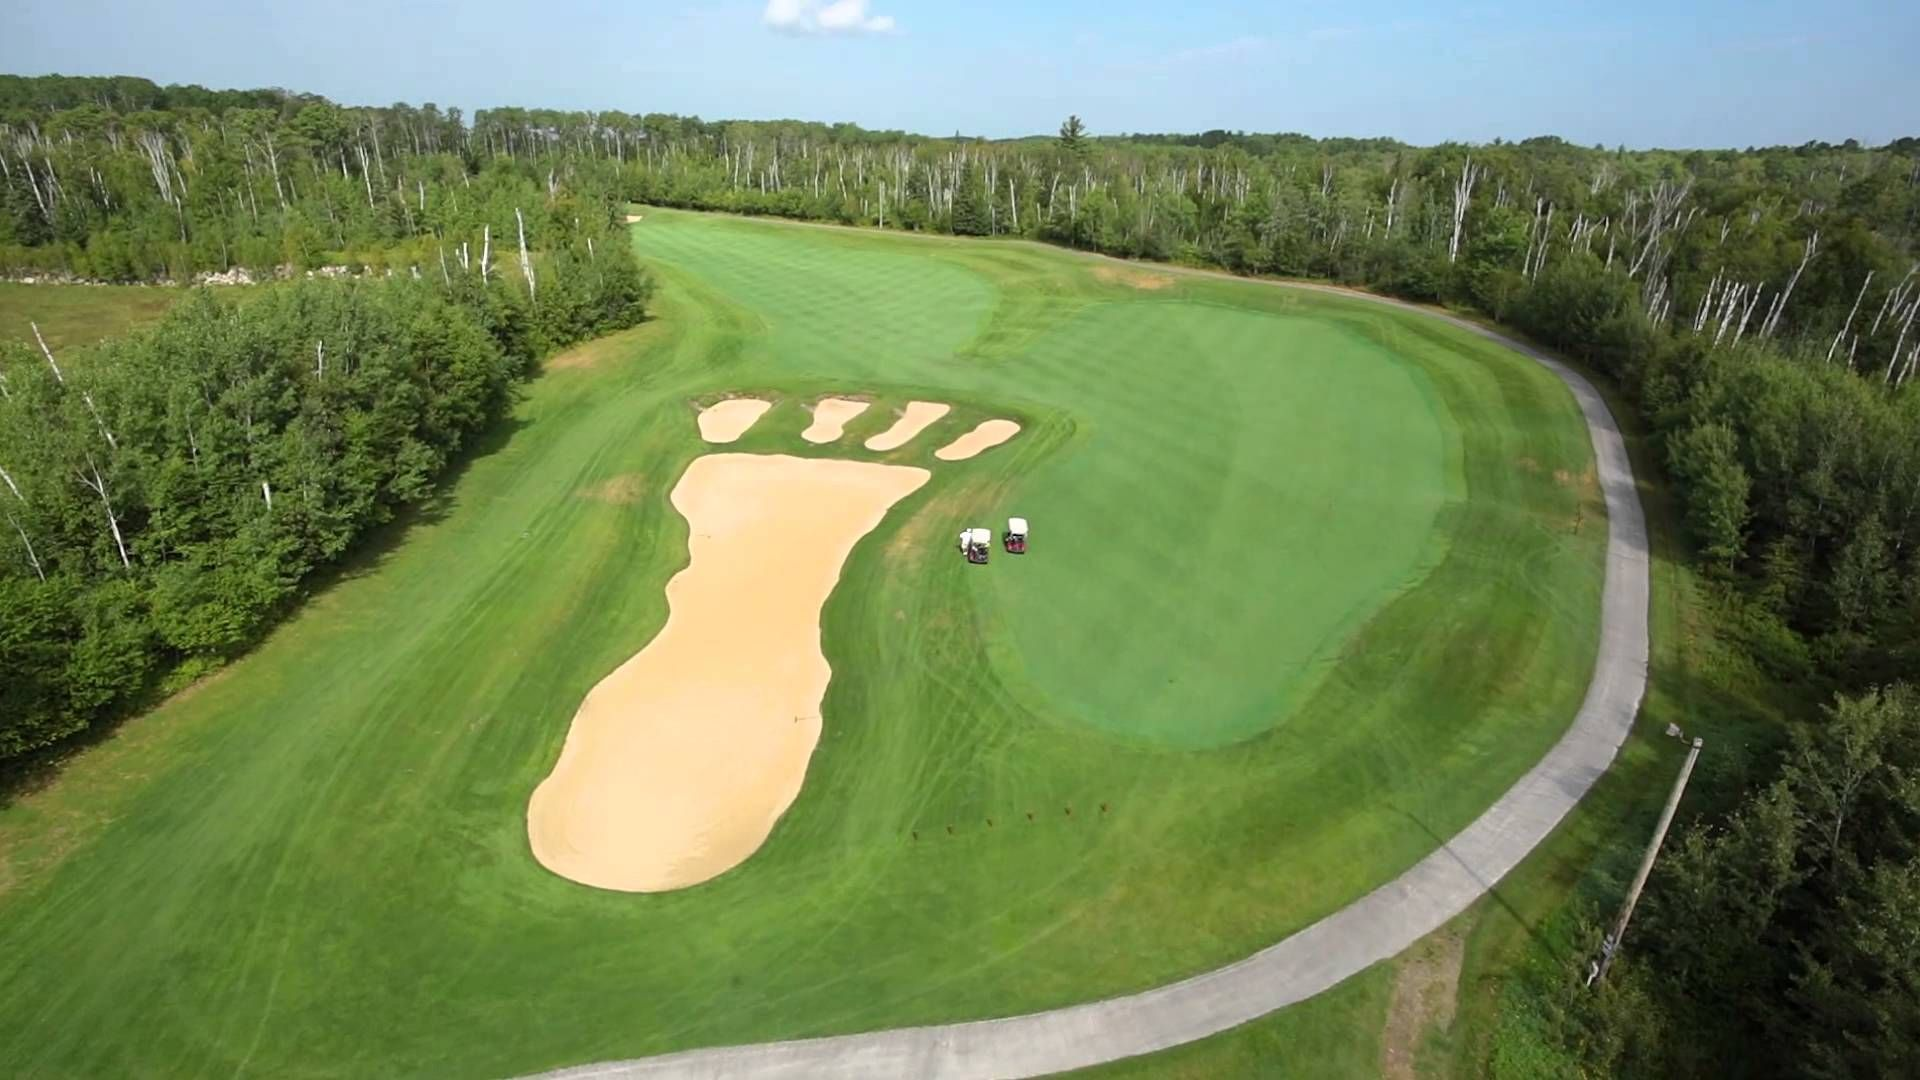 Giant S Ridge Legends Golf Course Biwabik Mn Great Video This Is What Northern Minnesota Golf Is All About Golf Courses Public Golf Courses Golf